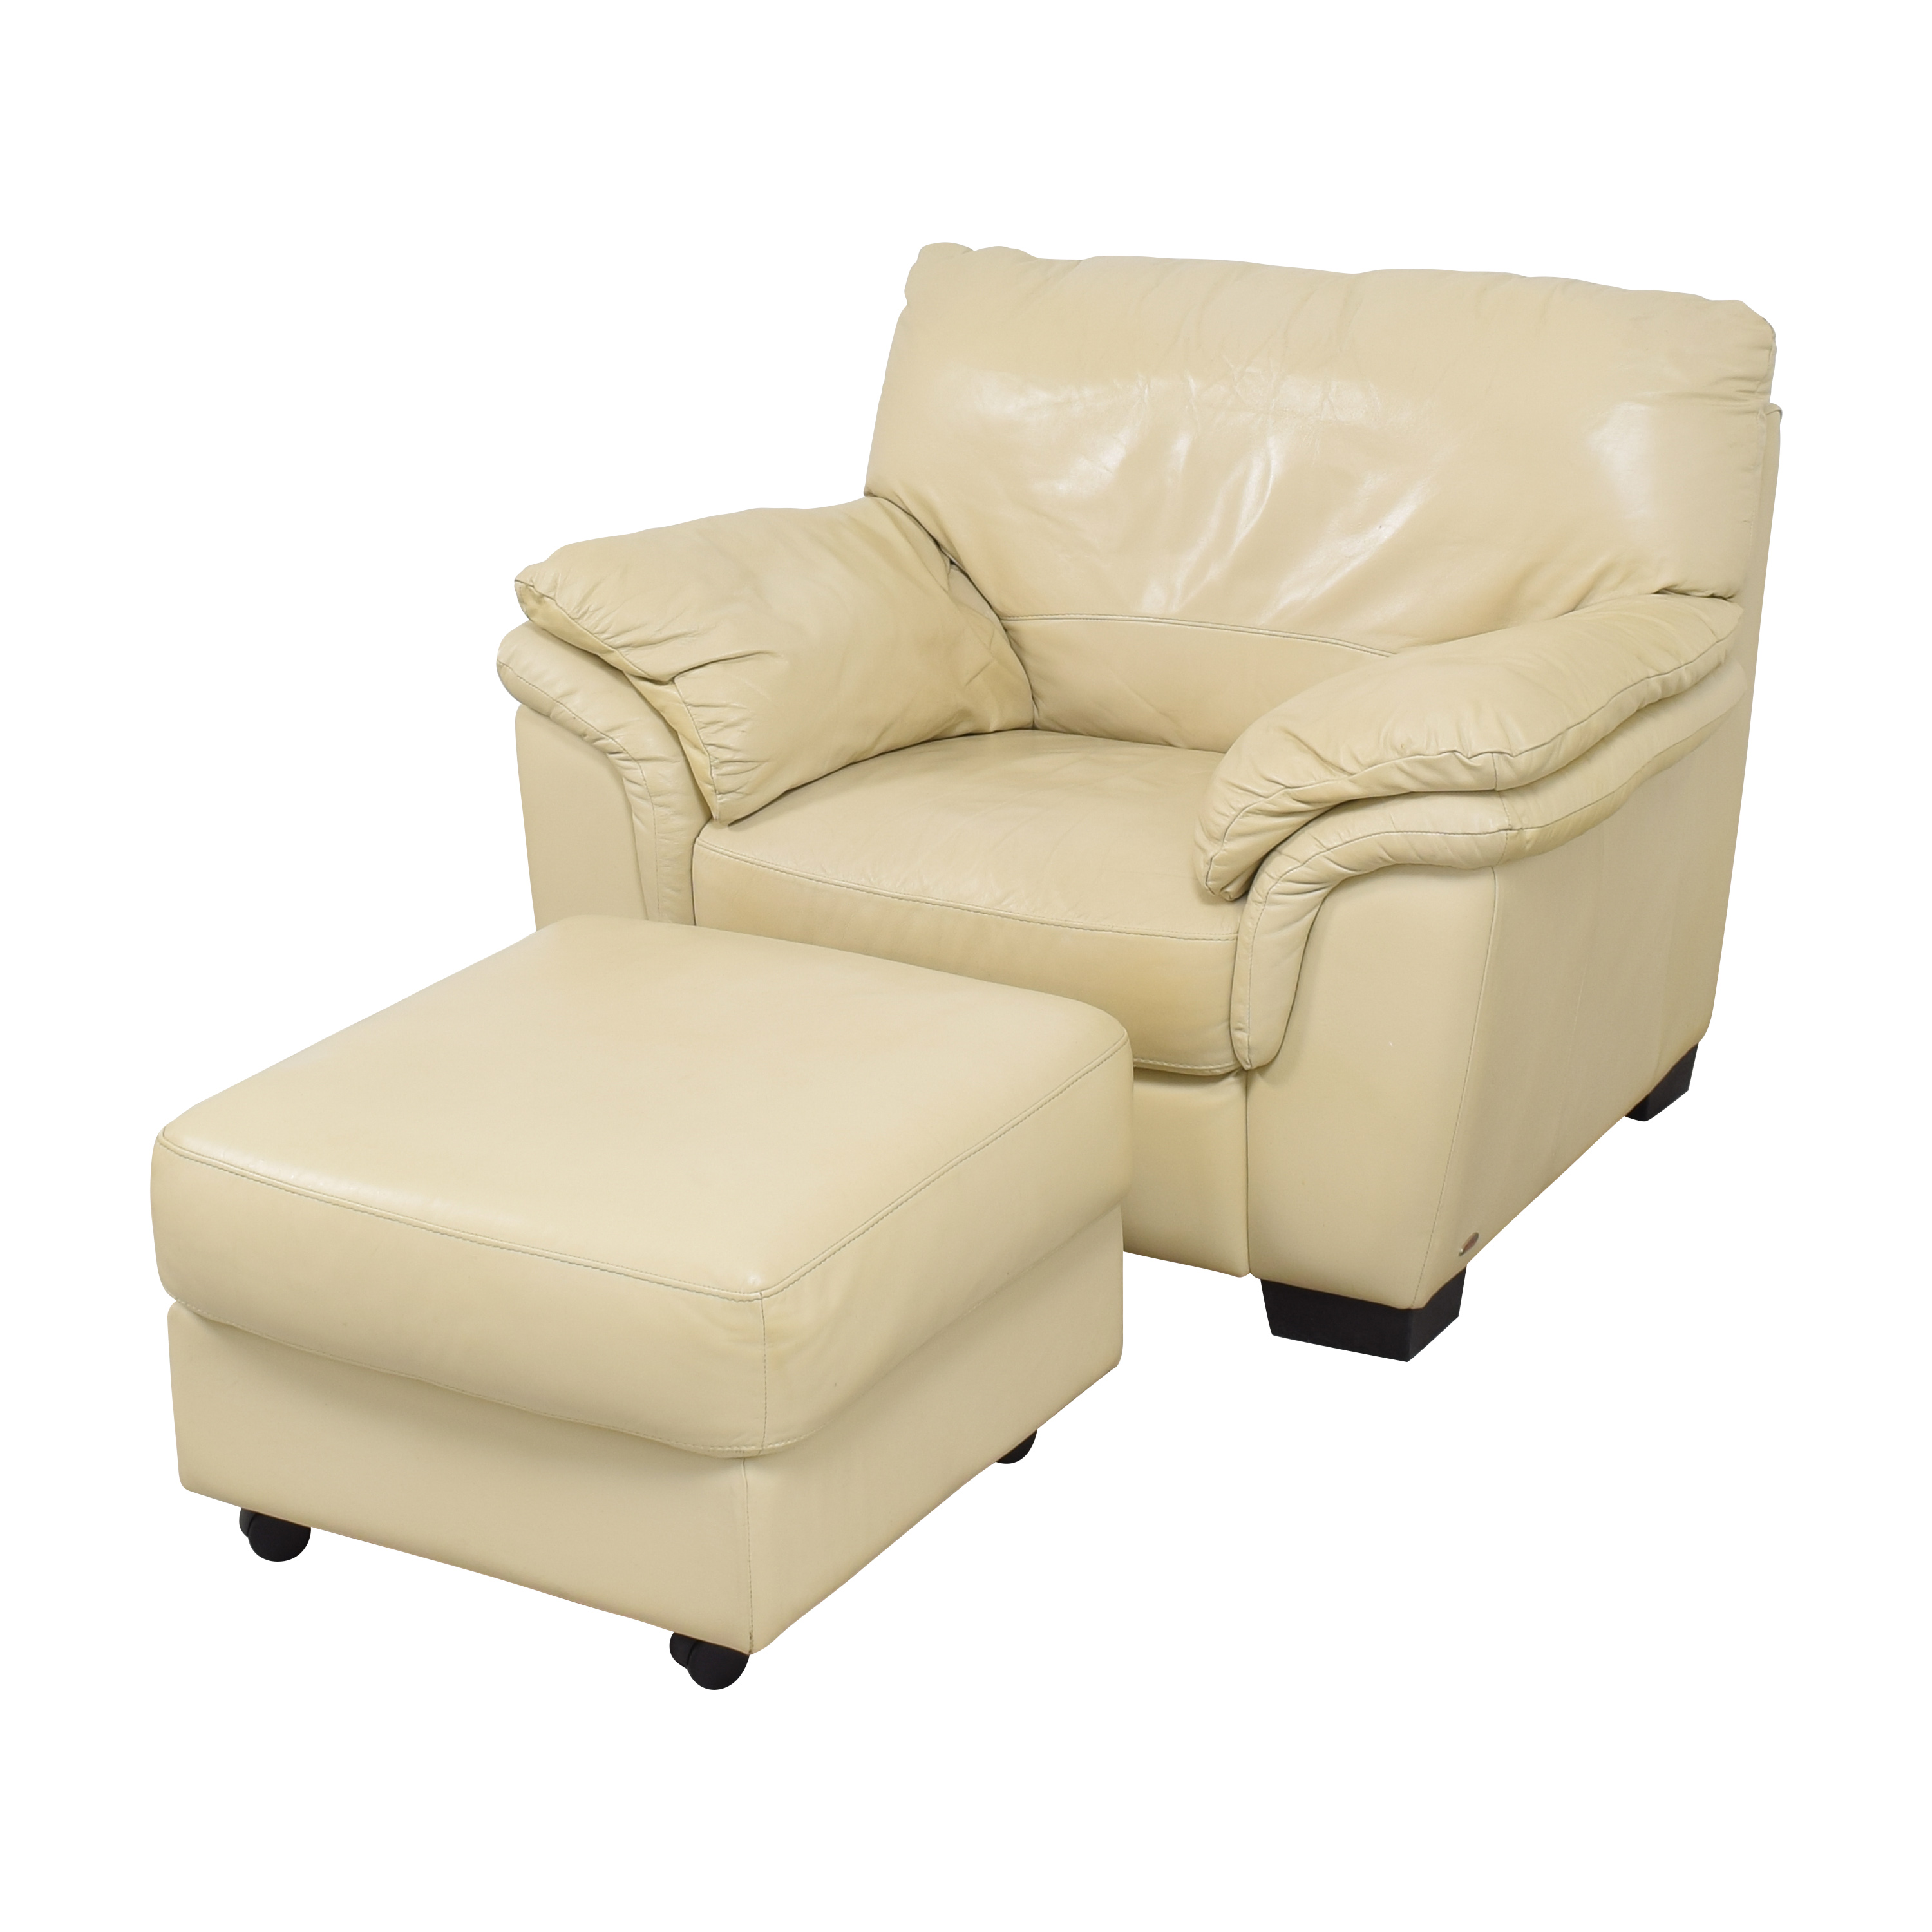 Raymour & Flanigan Raymour & Flanigan Chair with Ottoman by Italsofa discount